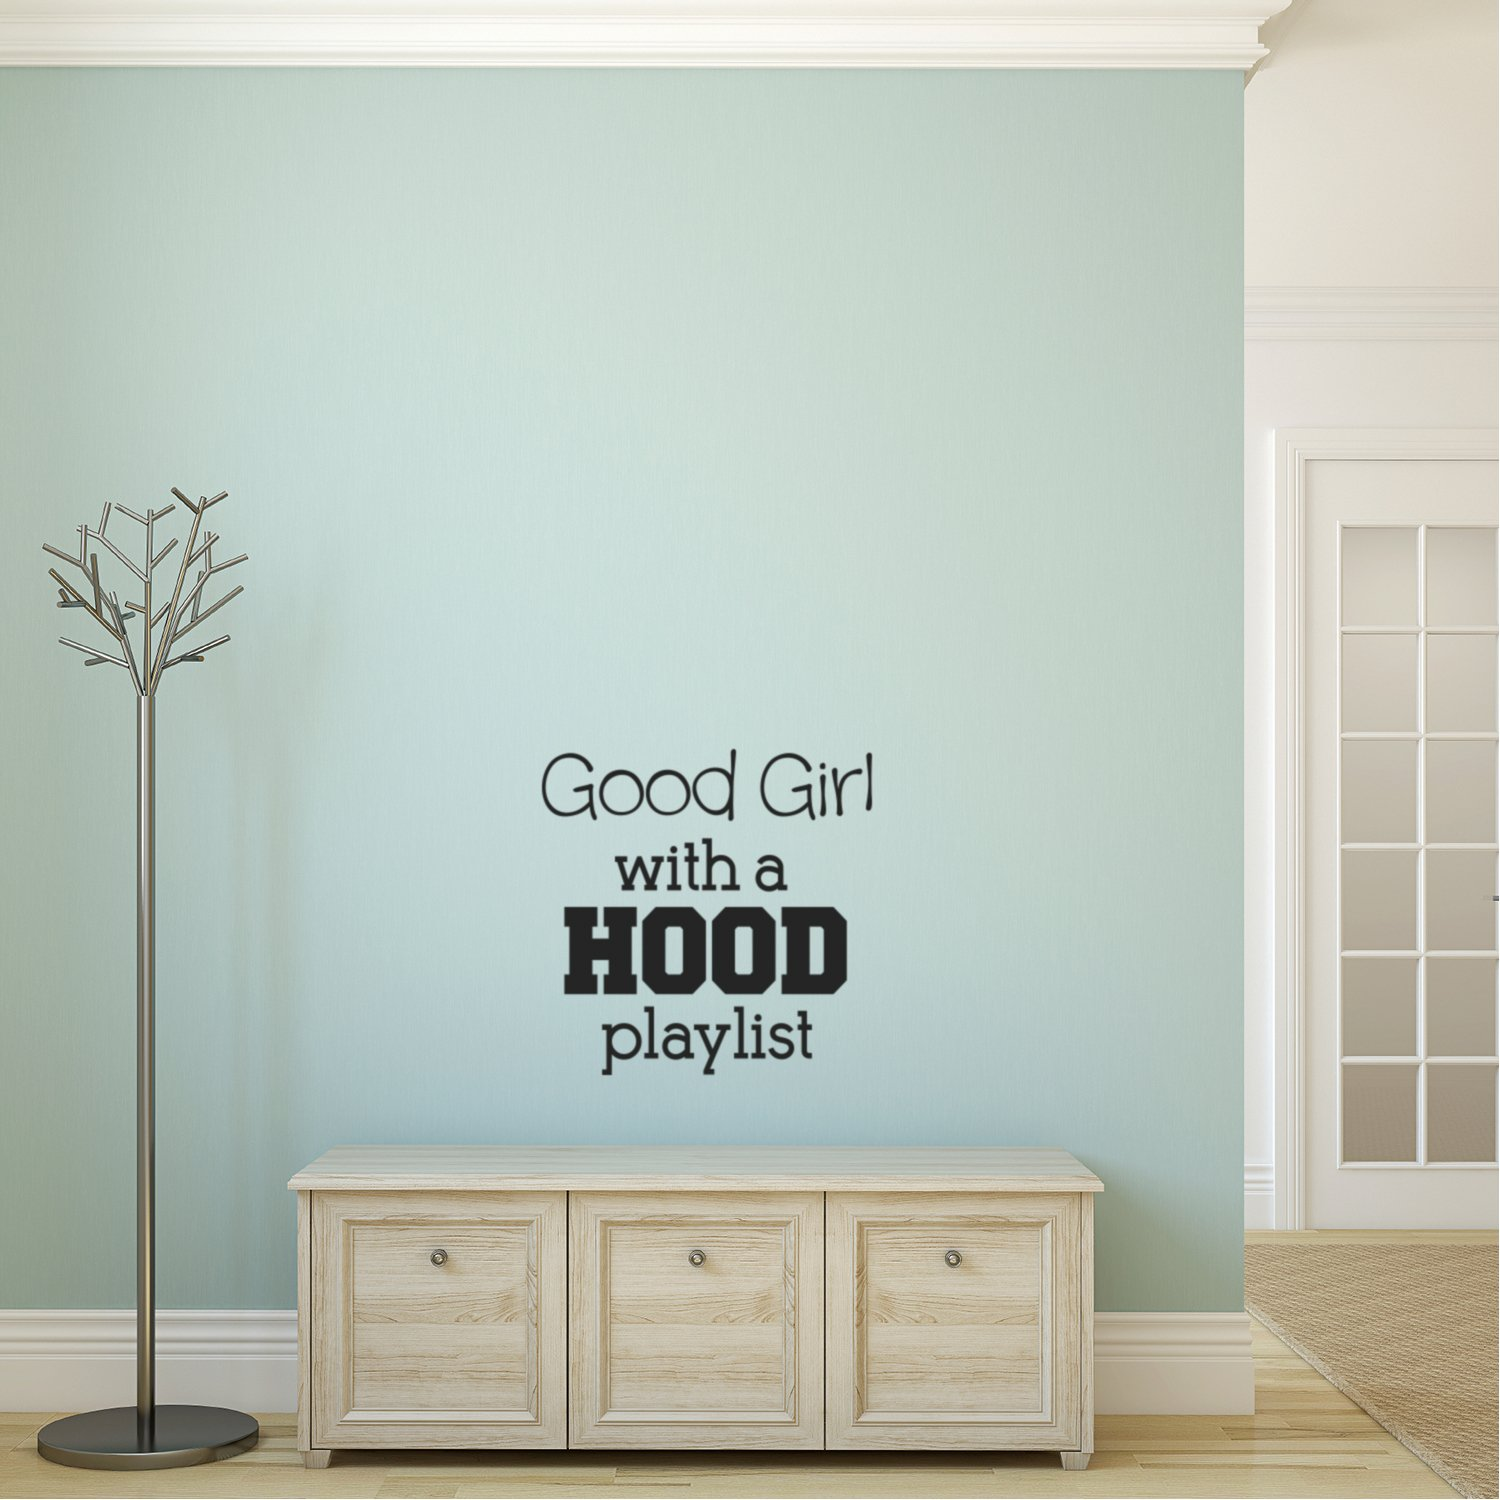 Vinyl Wall Art Decal - Good Girl with A Hood Playlist - 20'' X 20'' Music Decoration Vinyl Sticker - Trendy Wall Art Decal - Bedroom Living Room Decor - Fashion Wall Art - Women's Positive Quotes by Pulse Vinyl